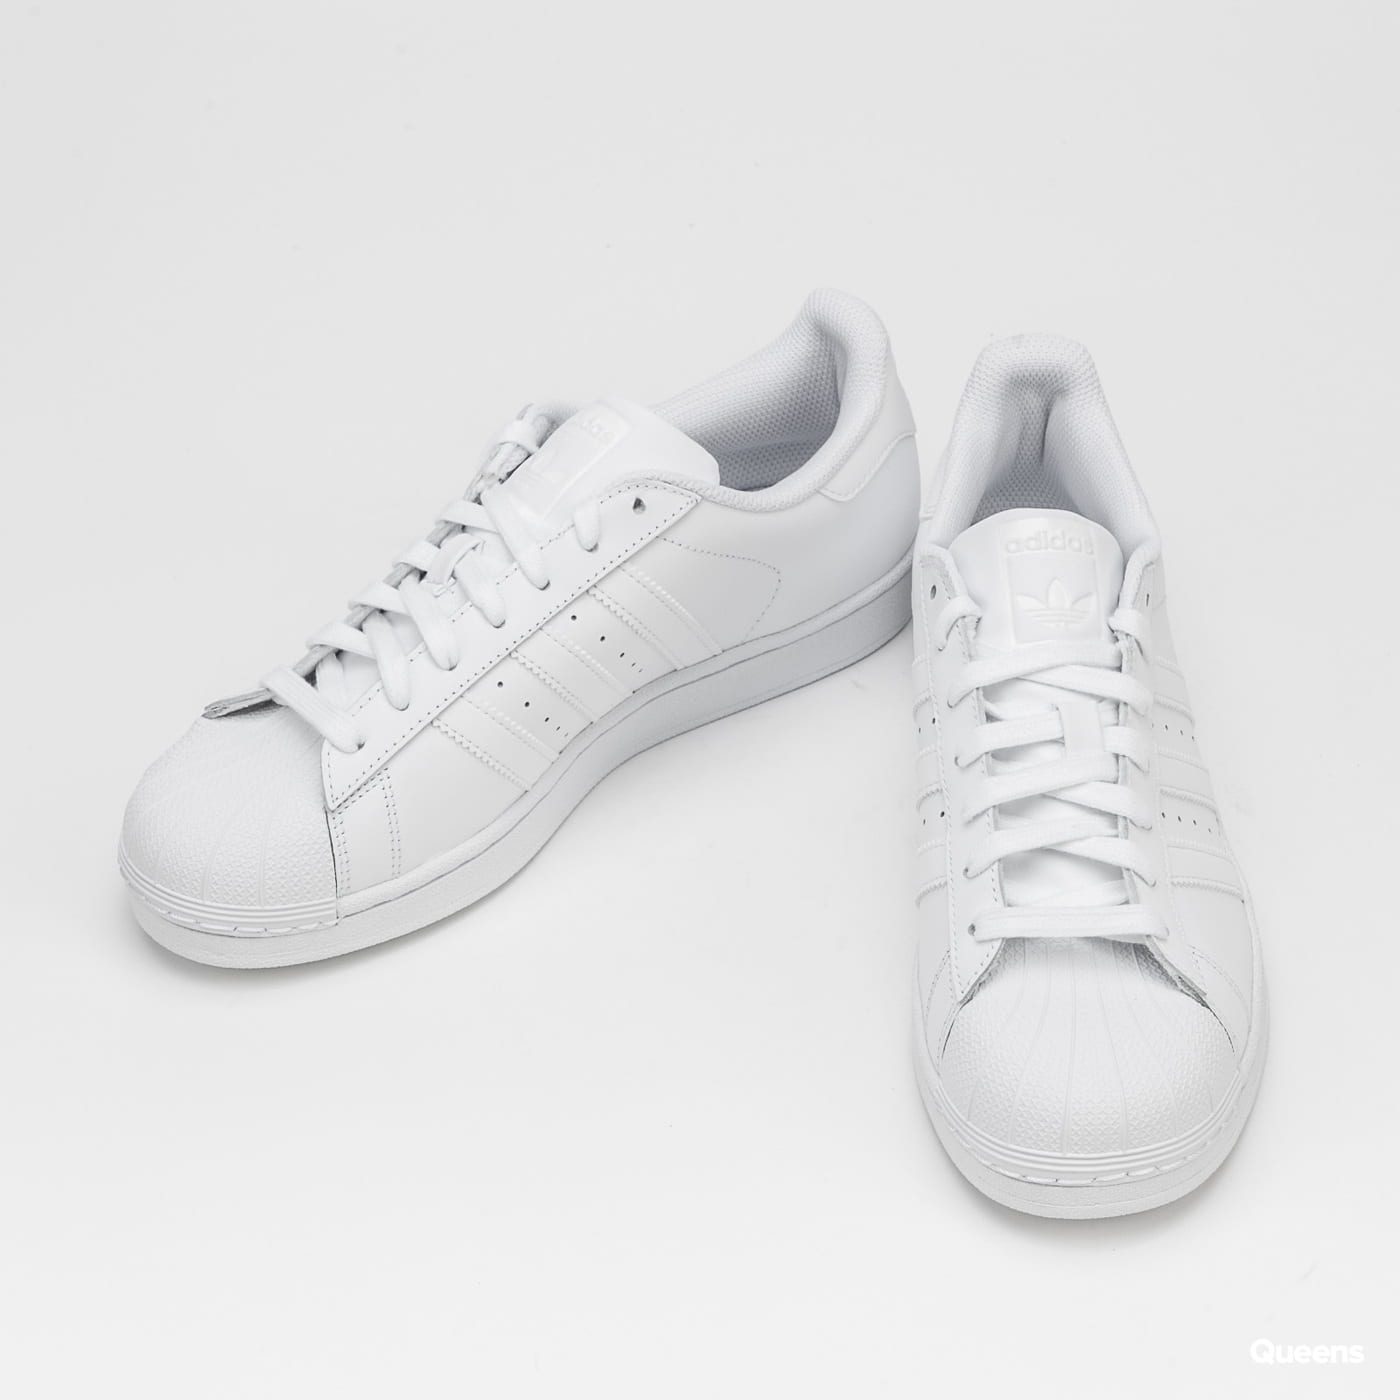 adidas Superstar Foundation ftwwht / ftwwht / ftwwht